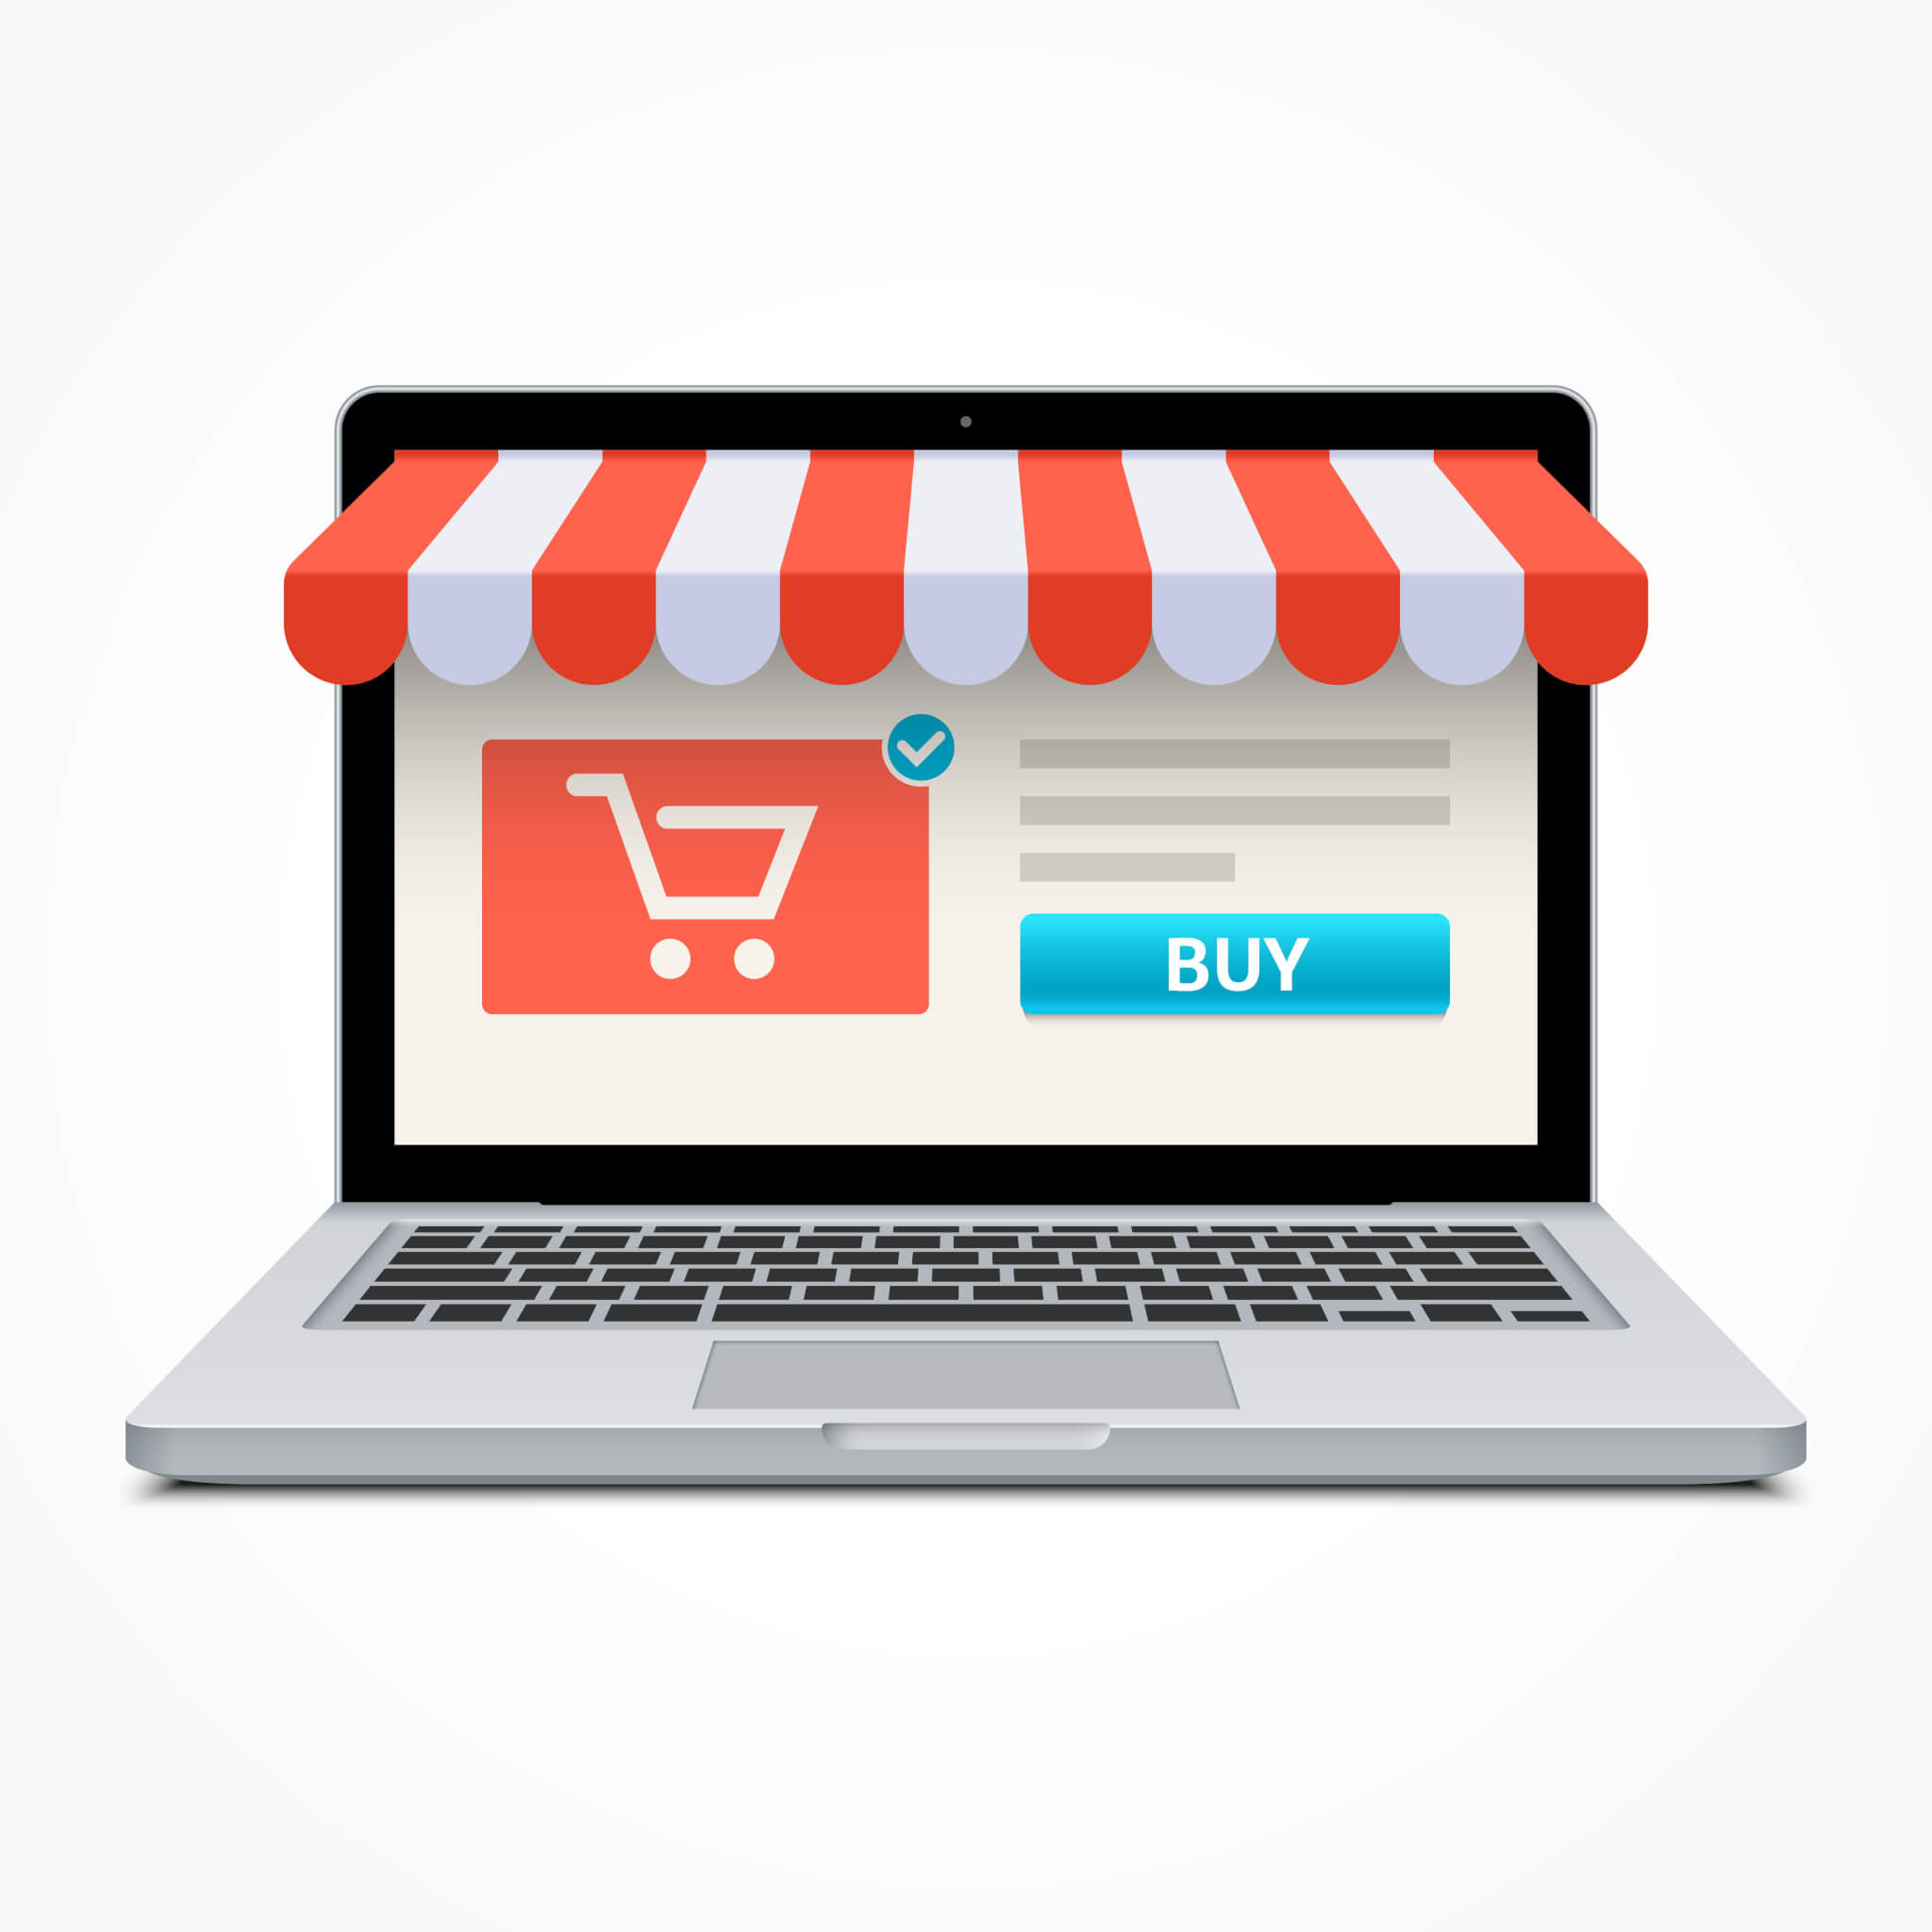 shopping concept on google my business logo on laptop